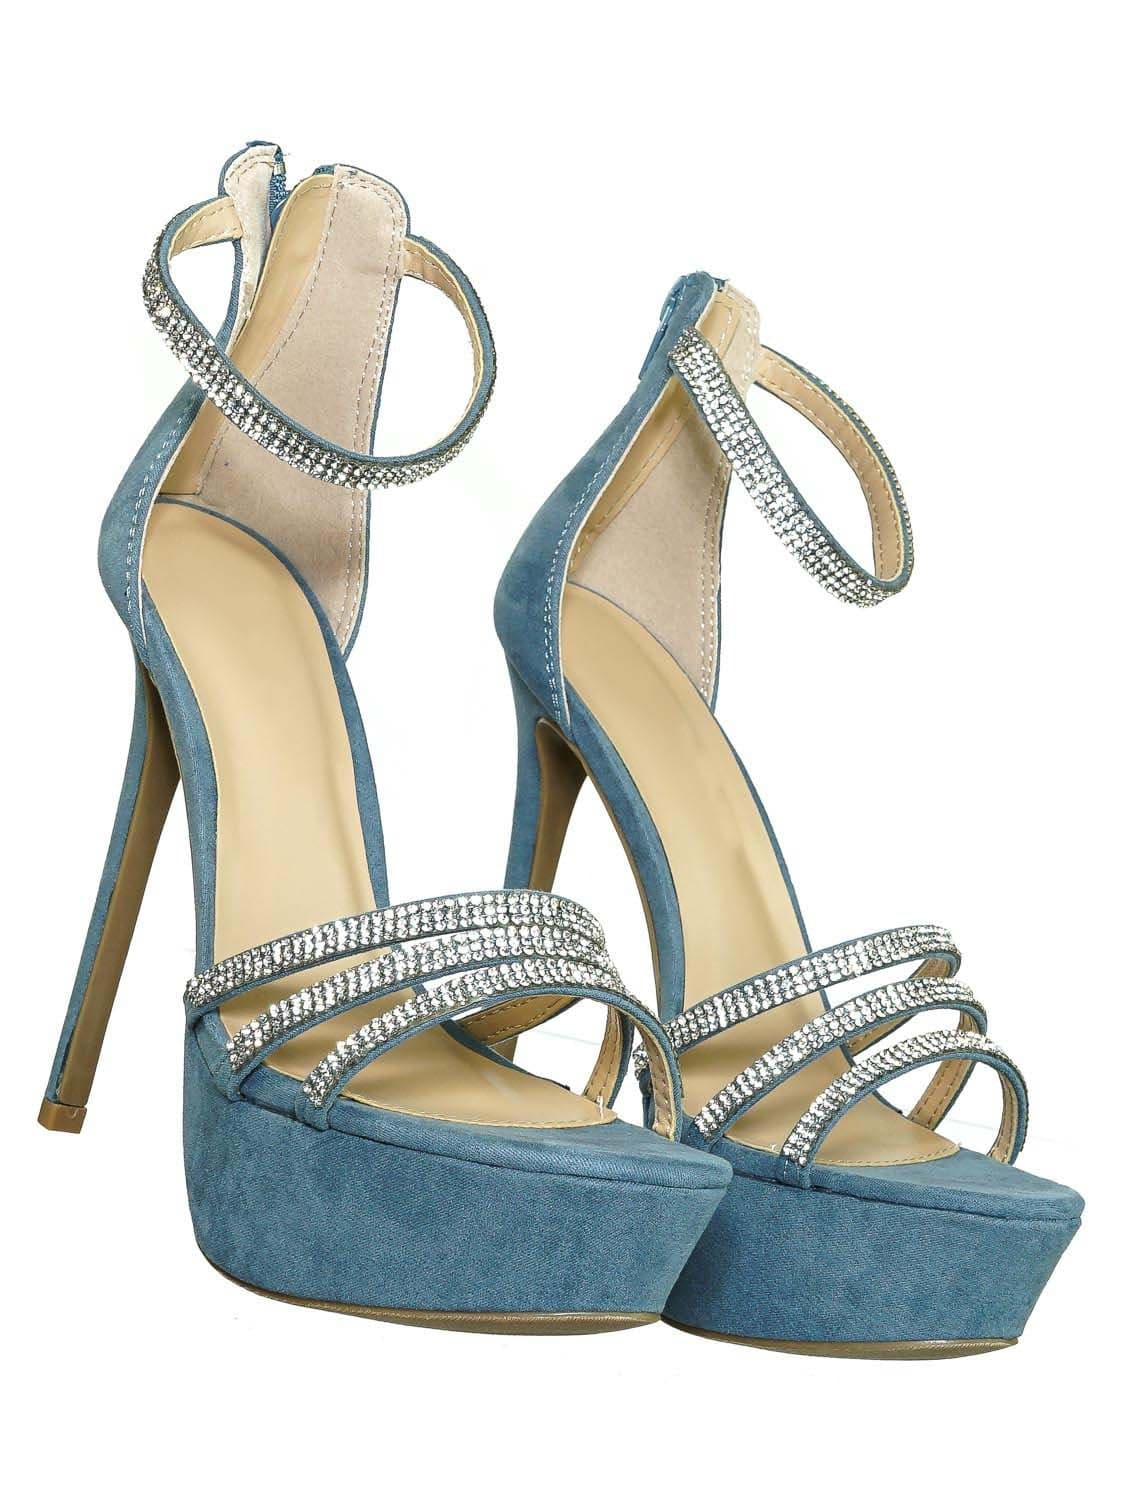 Malia01 BlueSu Rhinestone High Heel Platform Dress Sandals - Women Ankle Strap Heels